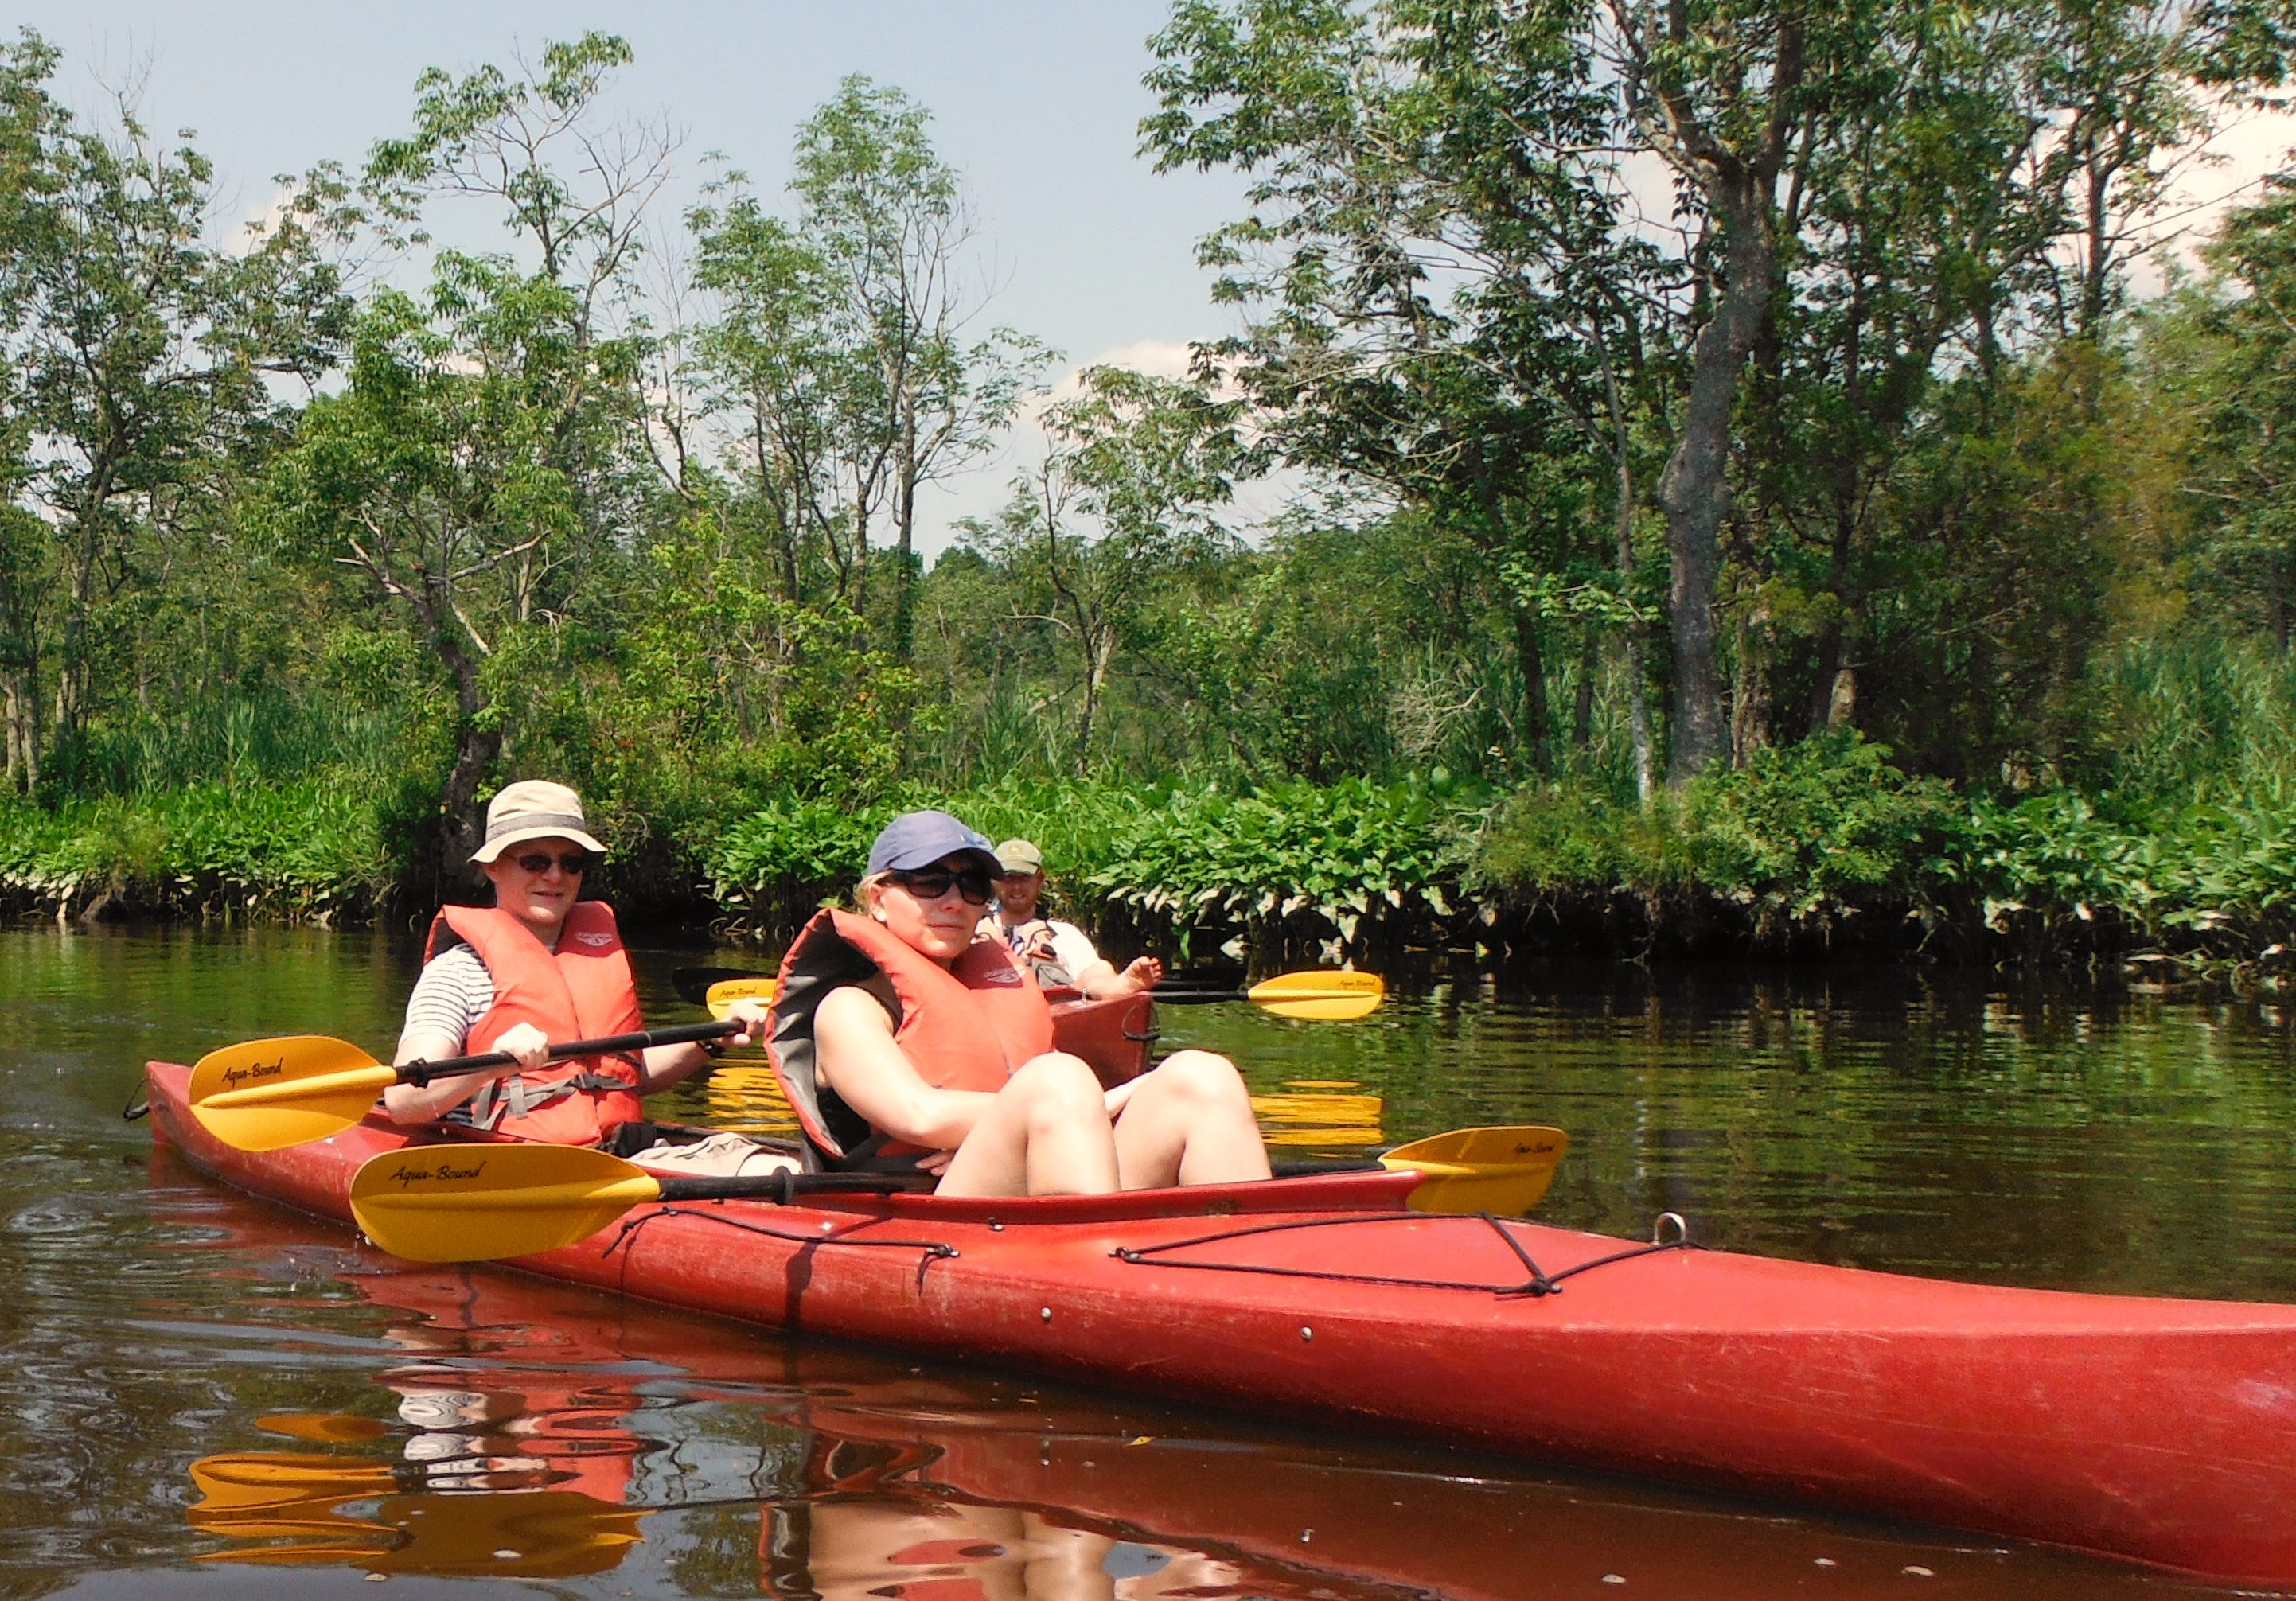 These visitors are exploring the Chicone paddle.